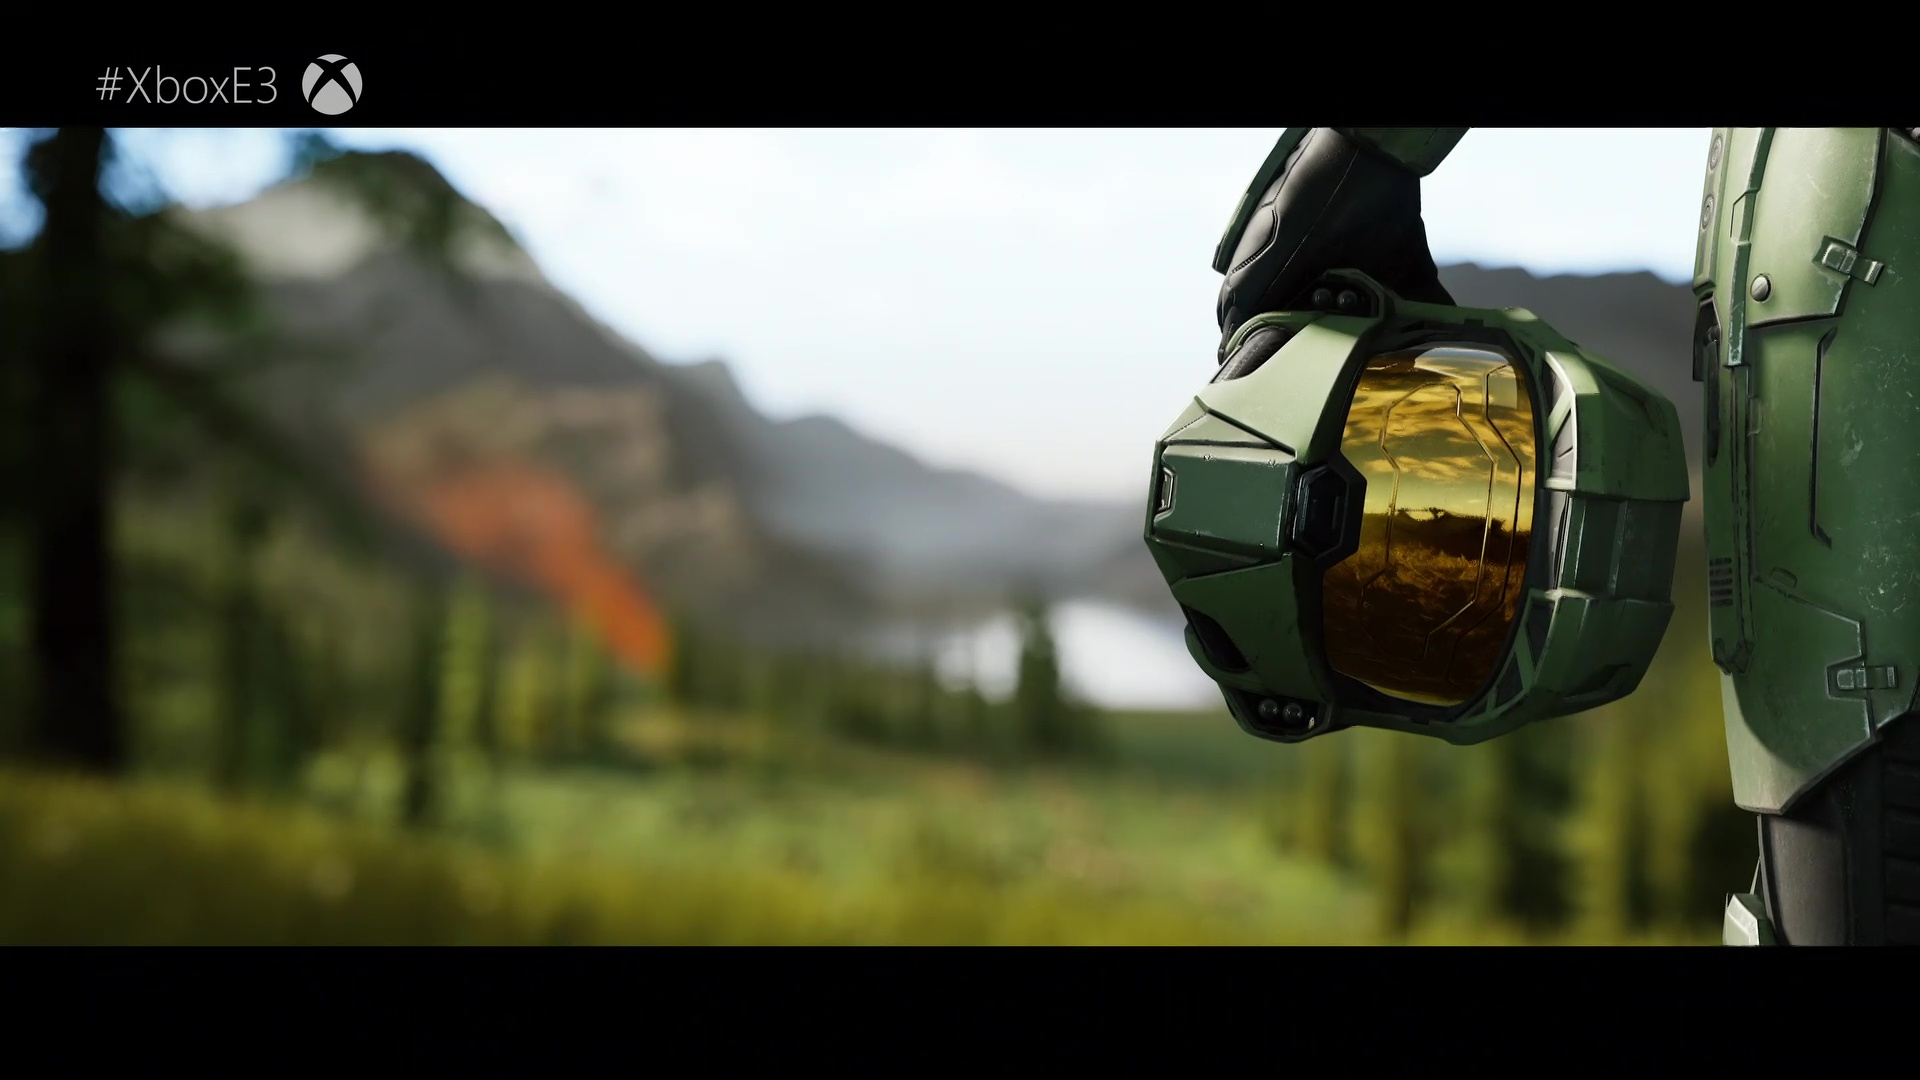 Halo Infinite loses veteran creative director